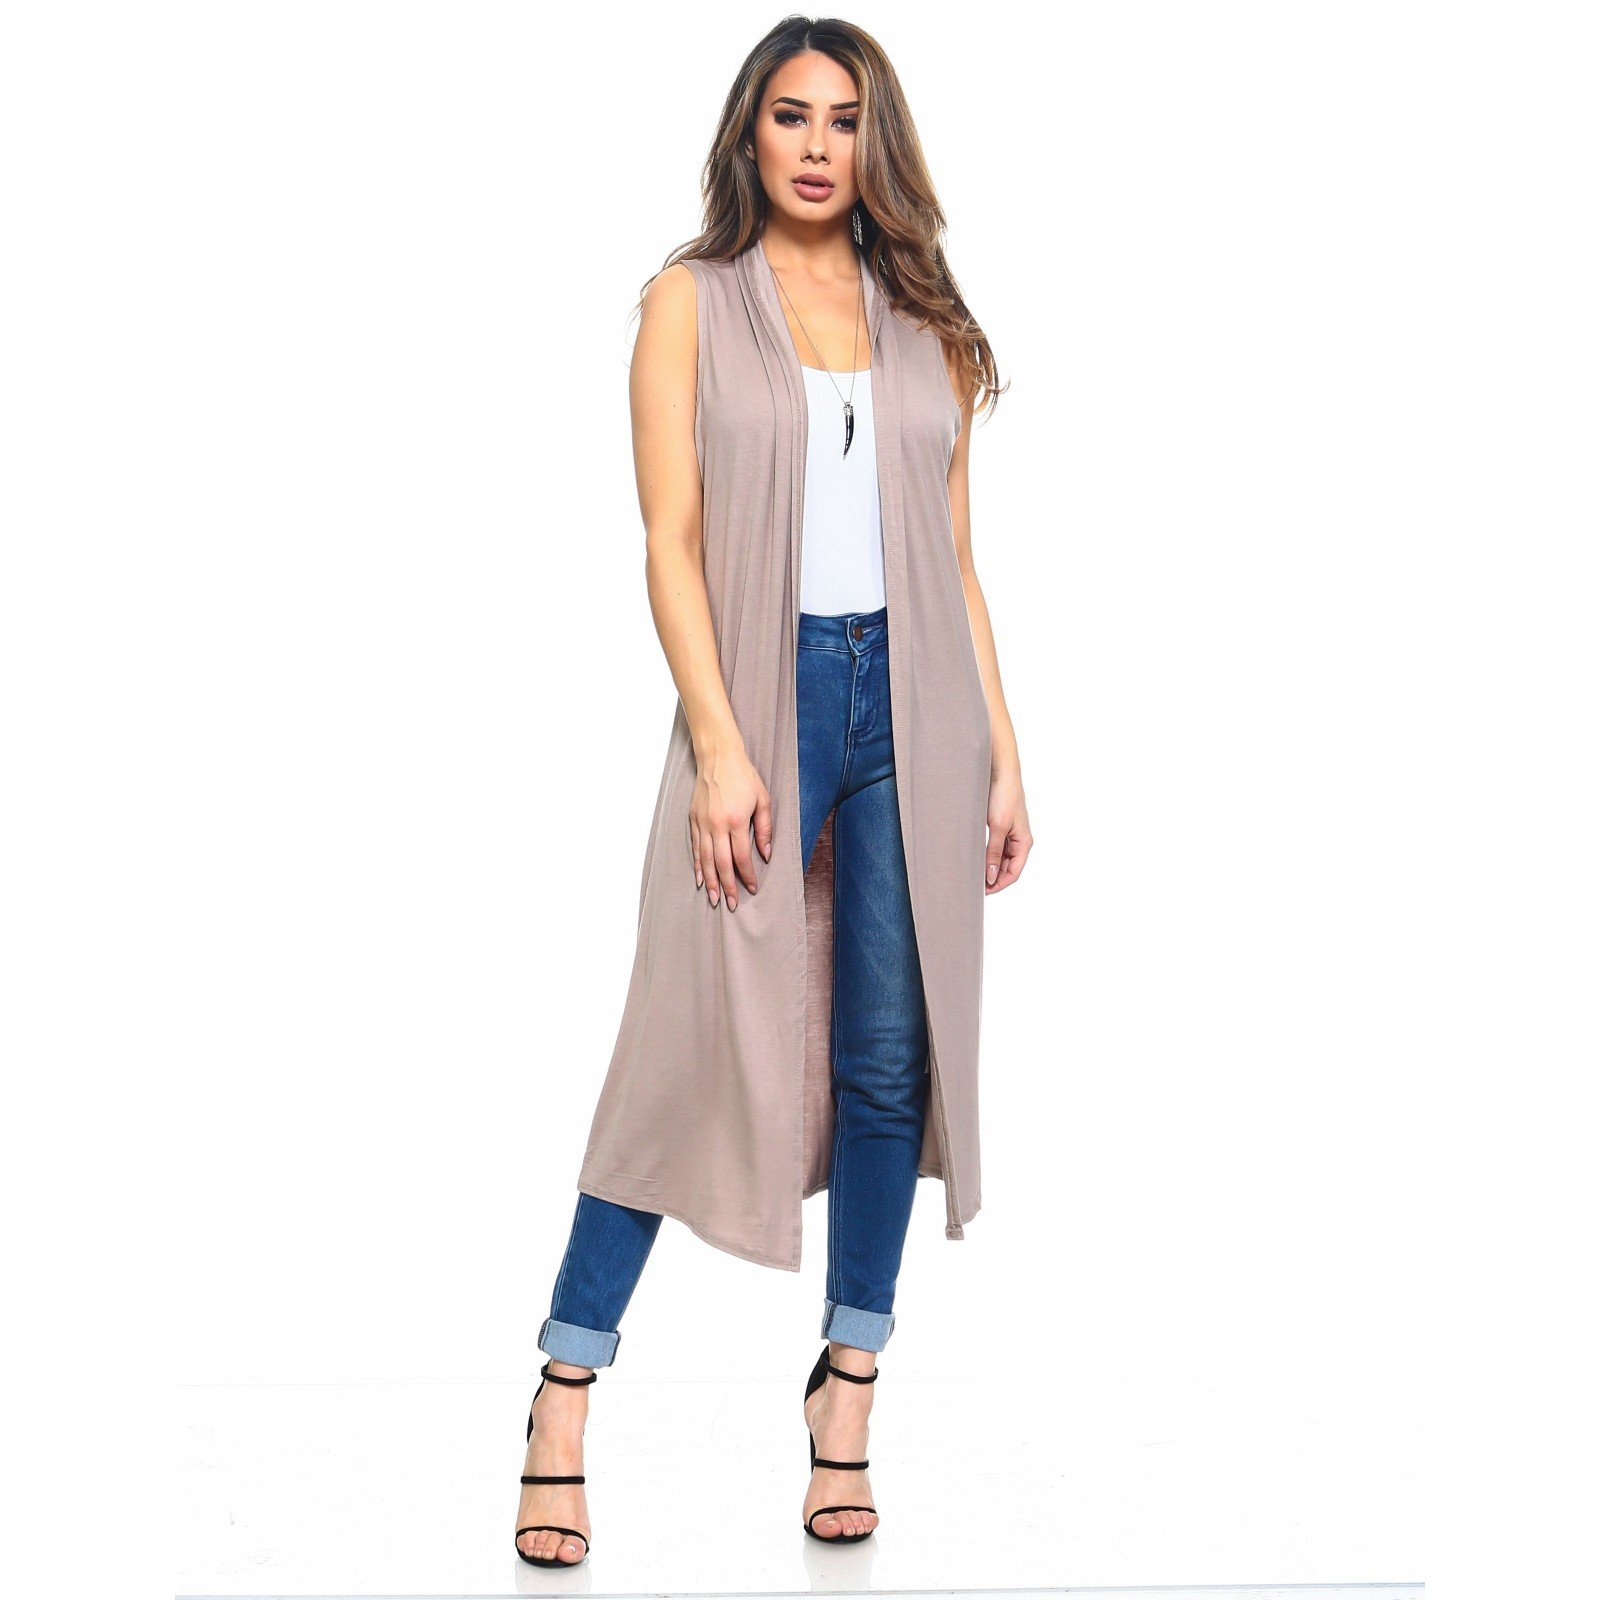 Isaac Liev Women's Long Open Front Cardigan Vest with Pockets and Side Slit (Large, Mocha)